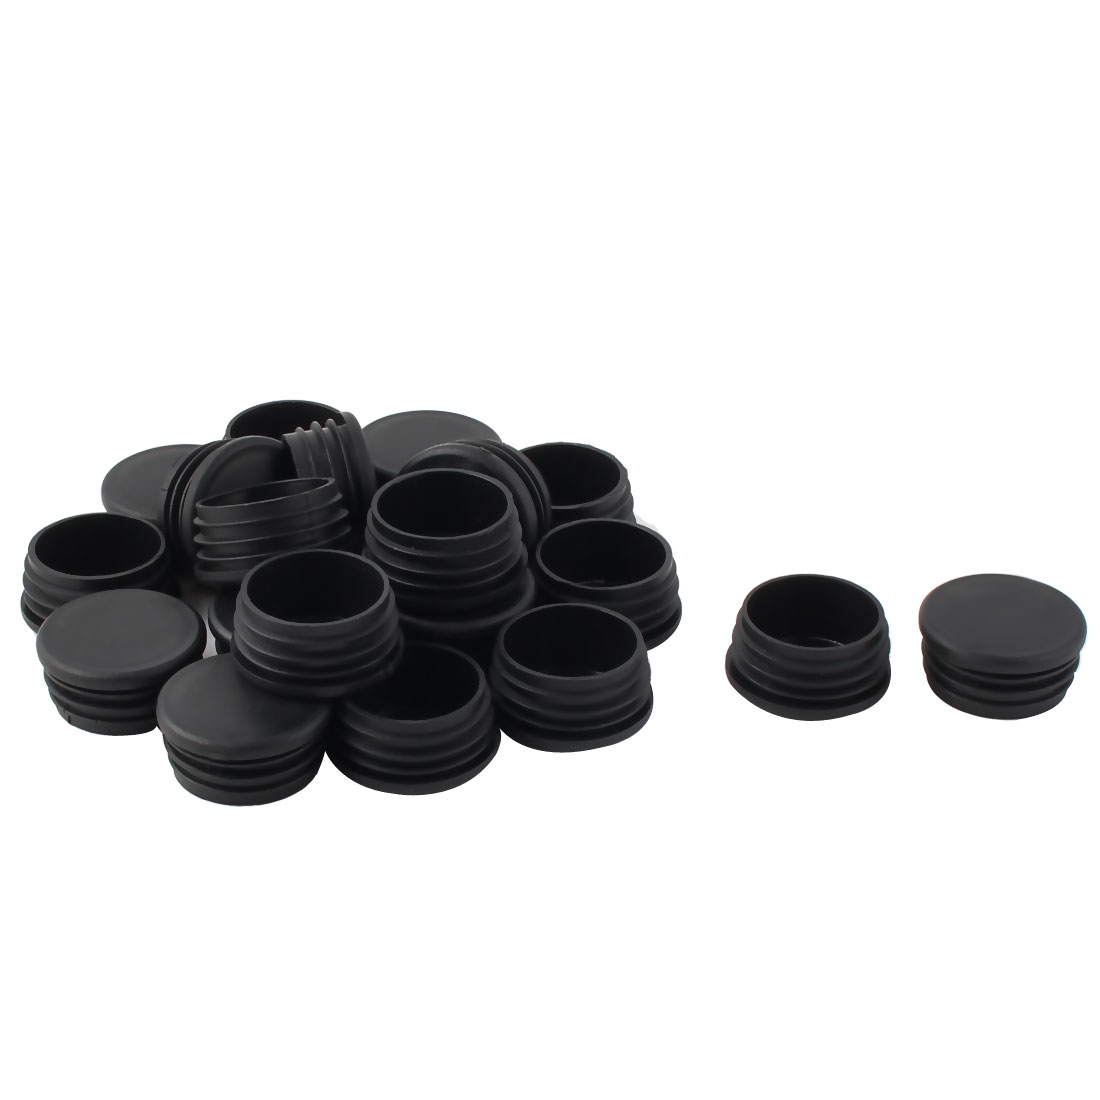 20 PCS Plastic Round Tube Insert Blanking End Protectors Caps Black 40mm